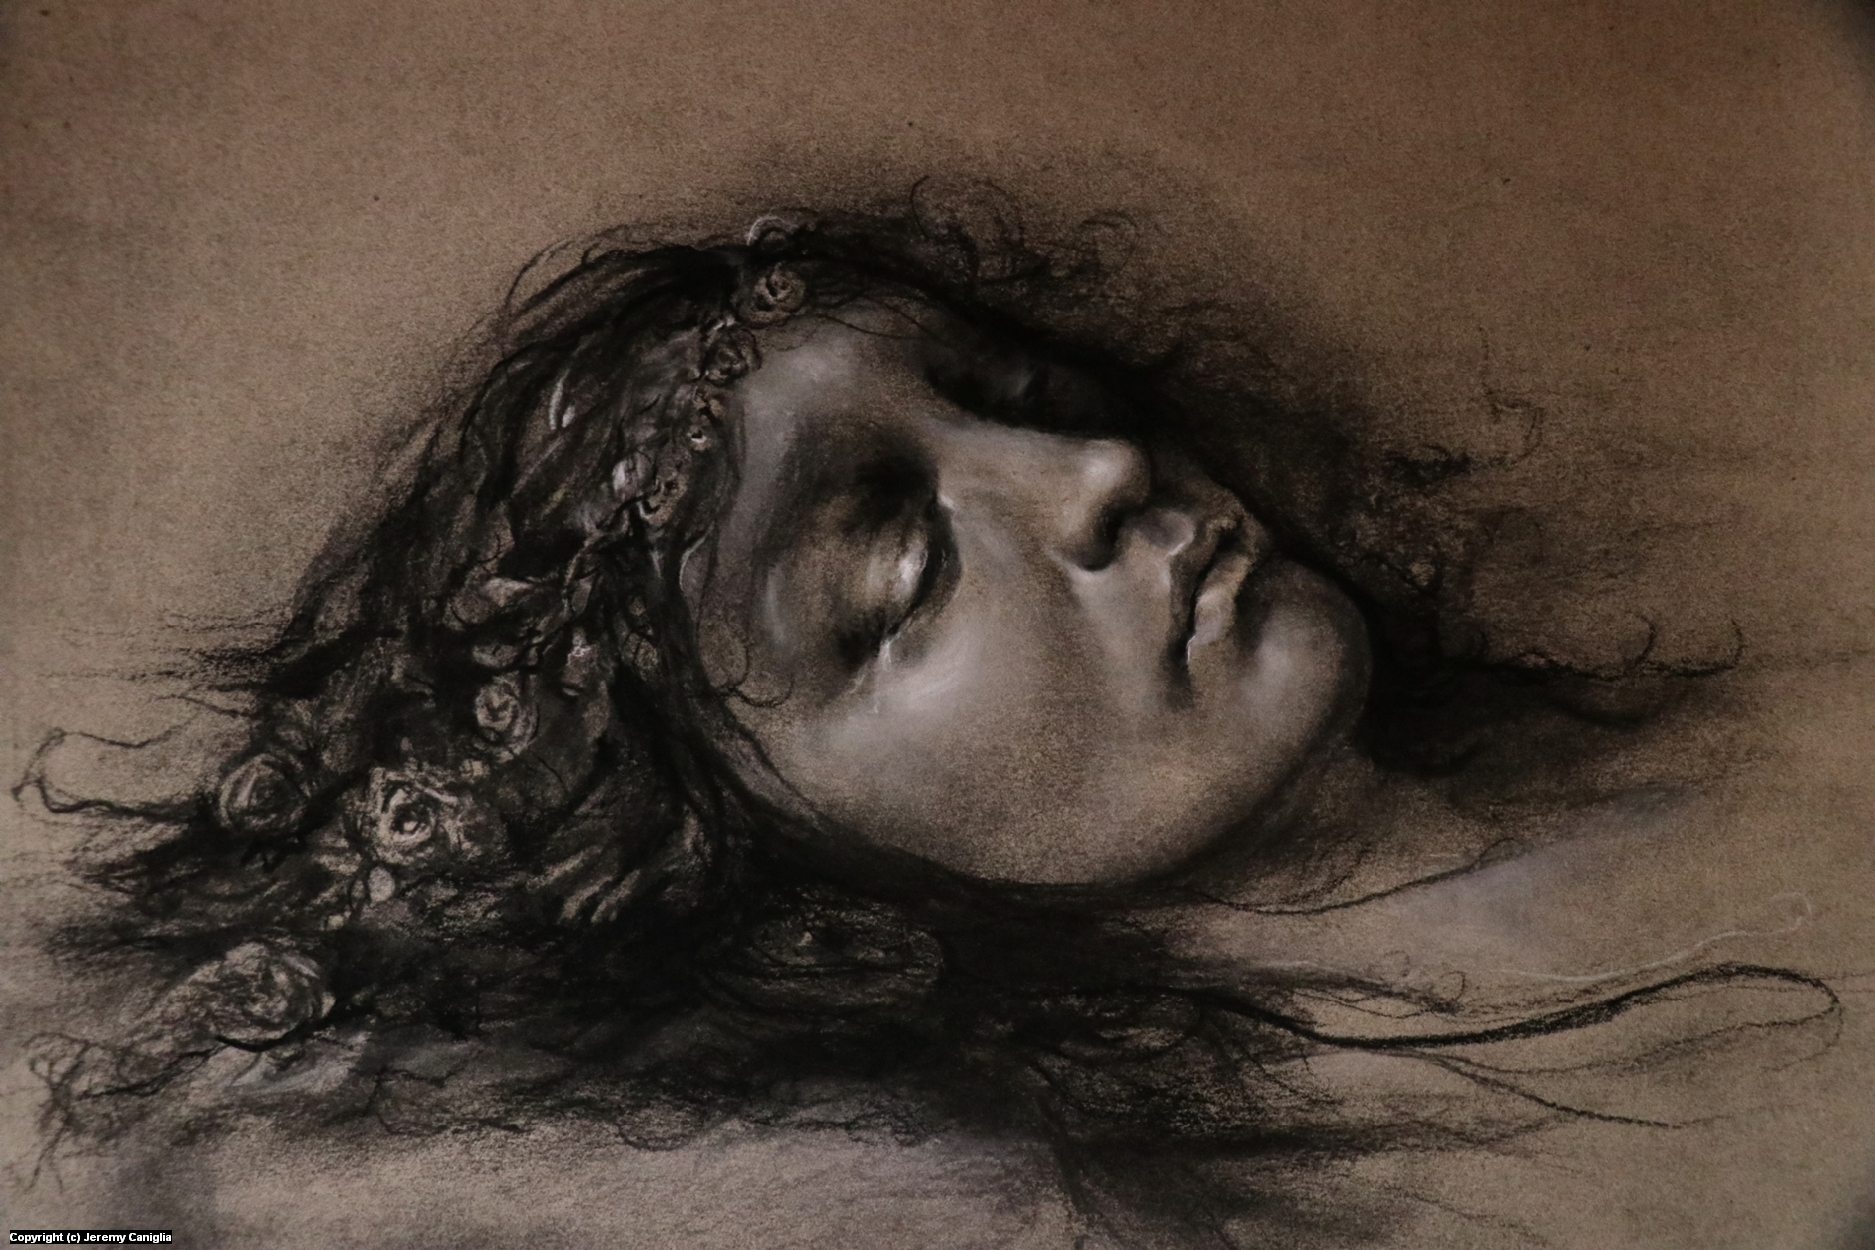 Ophelia, Floating Behind the Veils of a Silent Spring Artwork by Jeremy  Caniglia